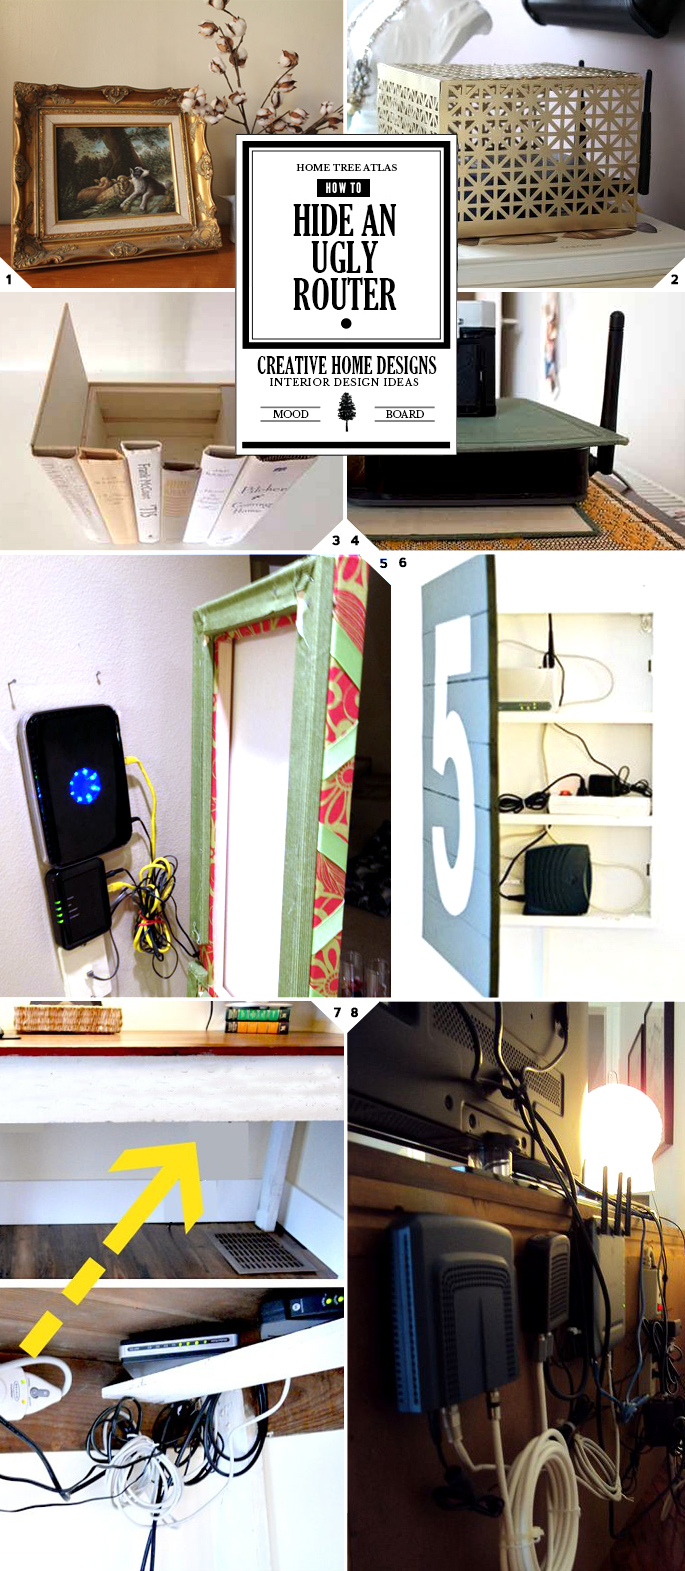 How To Make Your Router Disappear 6 Inventive And